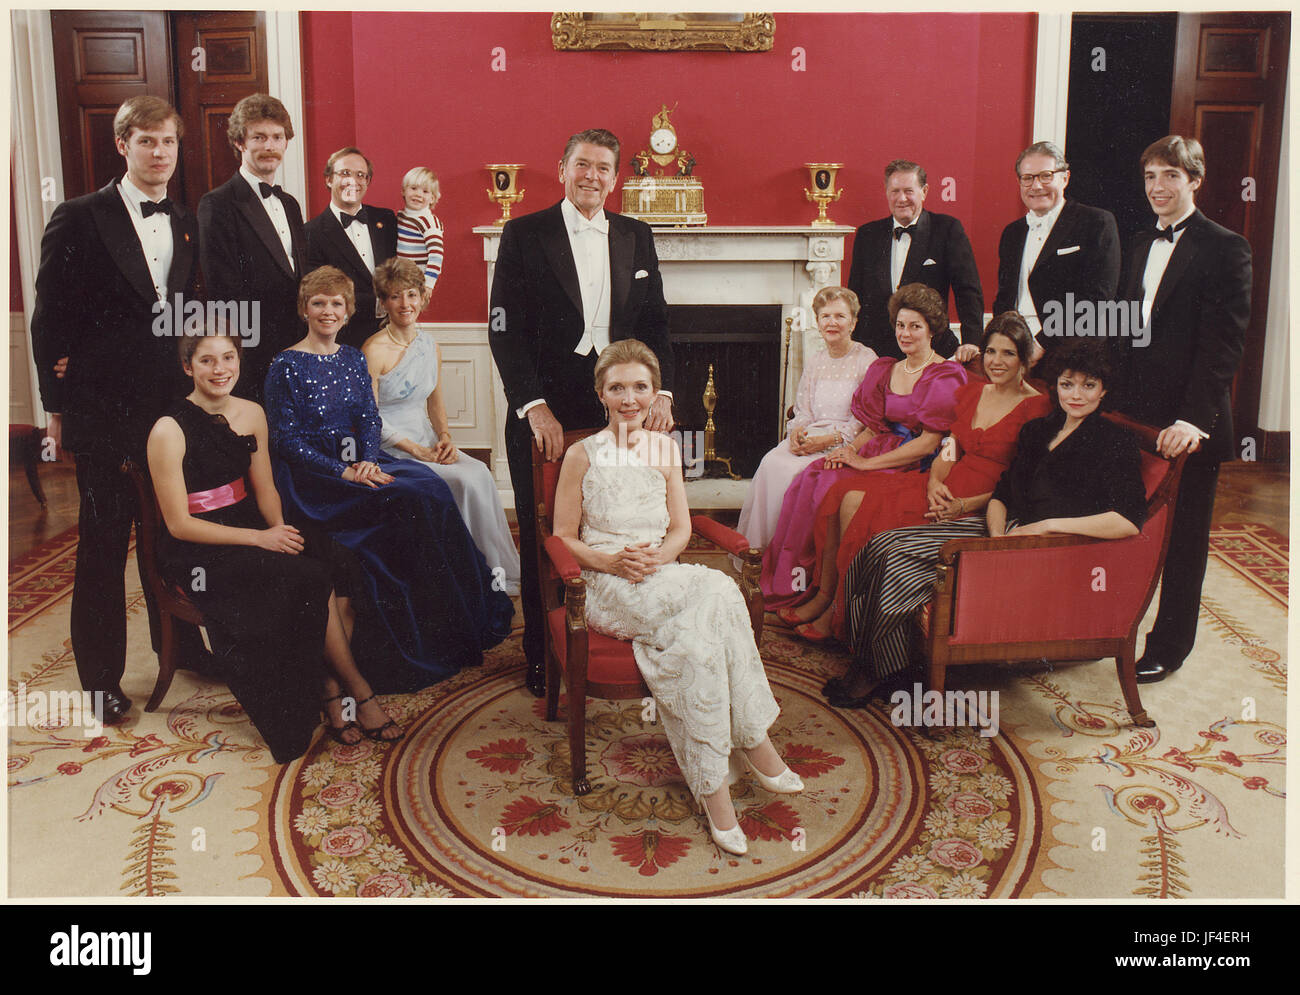 1981 Presidential Inaugural Family Photo:(standing from left to right) Geoffrey Davis, Dennis Revell, Michael Reagan, - Stock Image